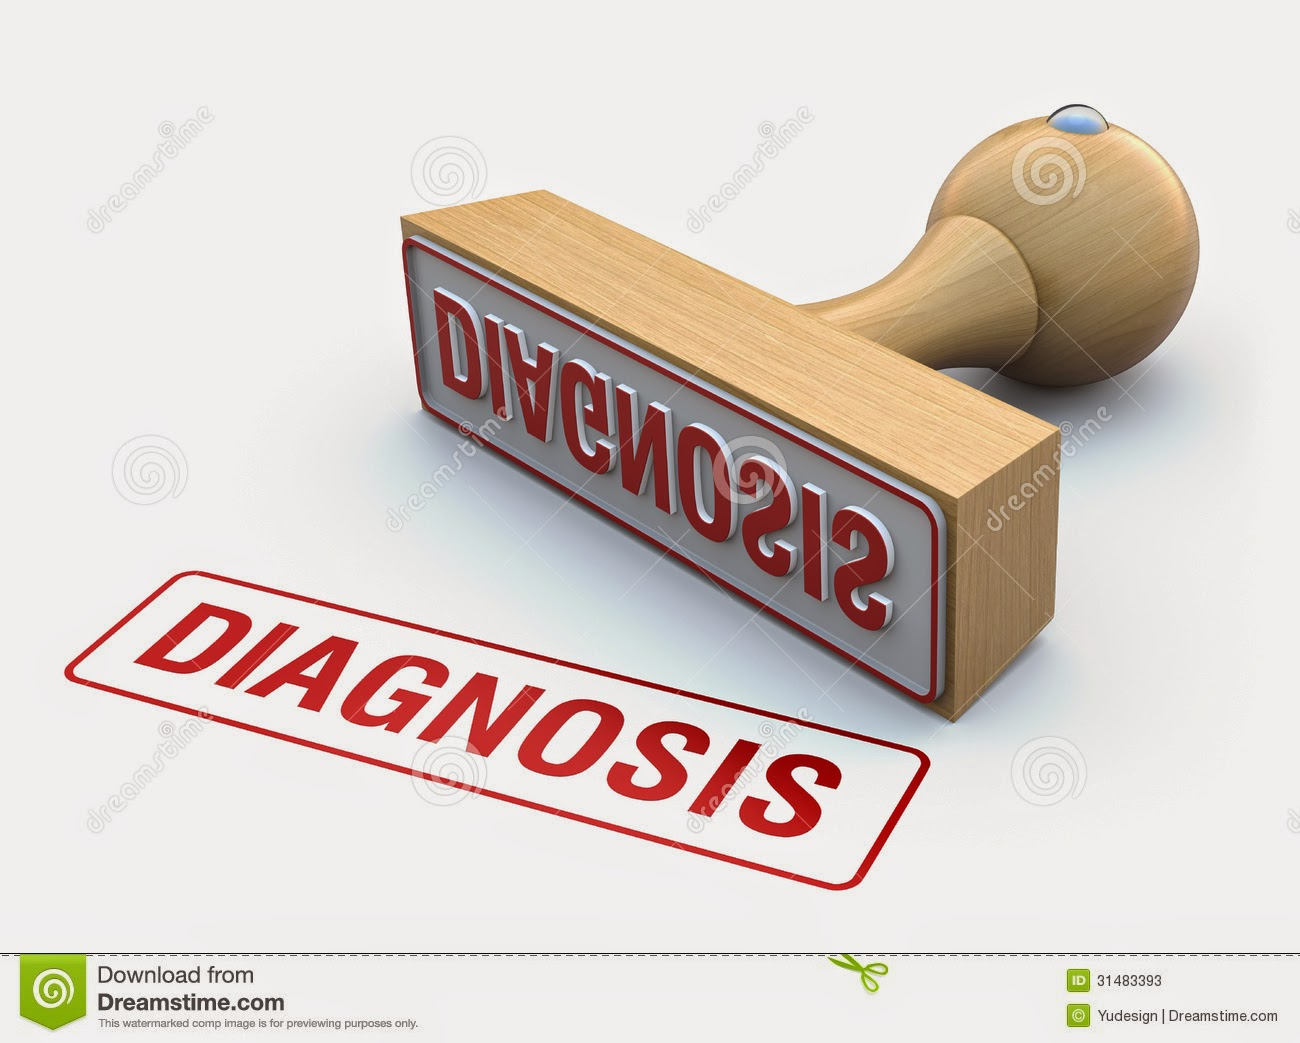 describe the impact of an early diagnosis and follow up to diagnosis Understand the process and experience of dementia 21 describe the impact of early diagnosis and follow up to understand the process and experience of.